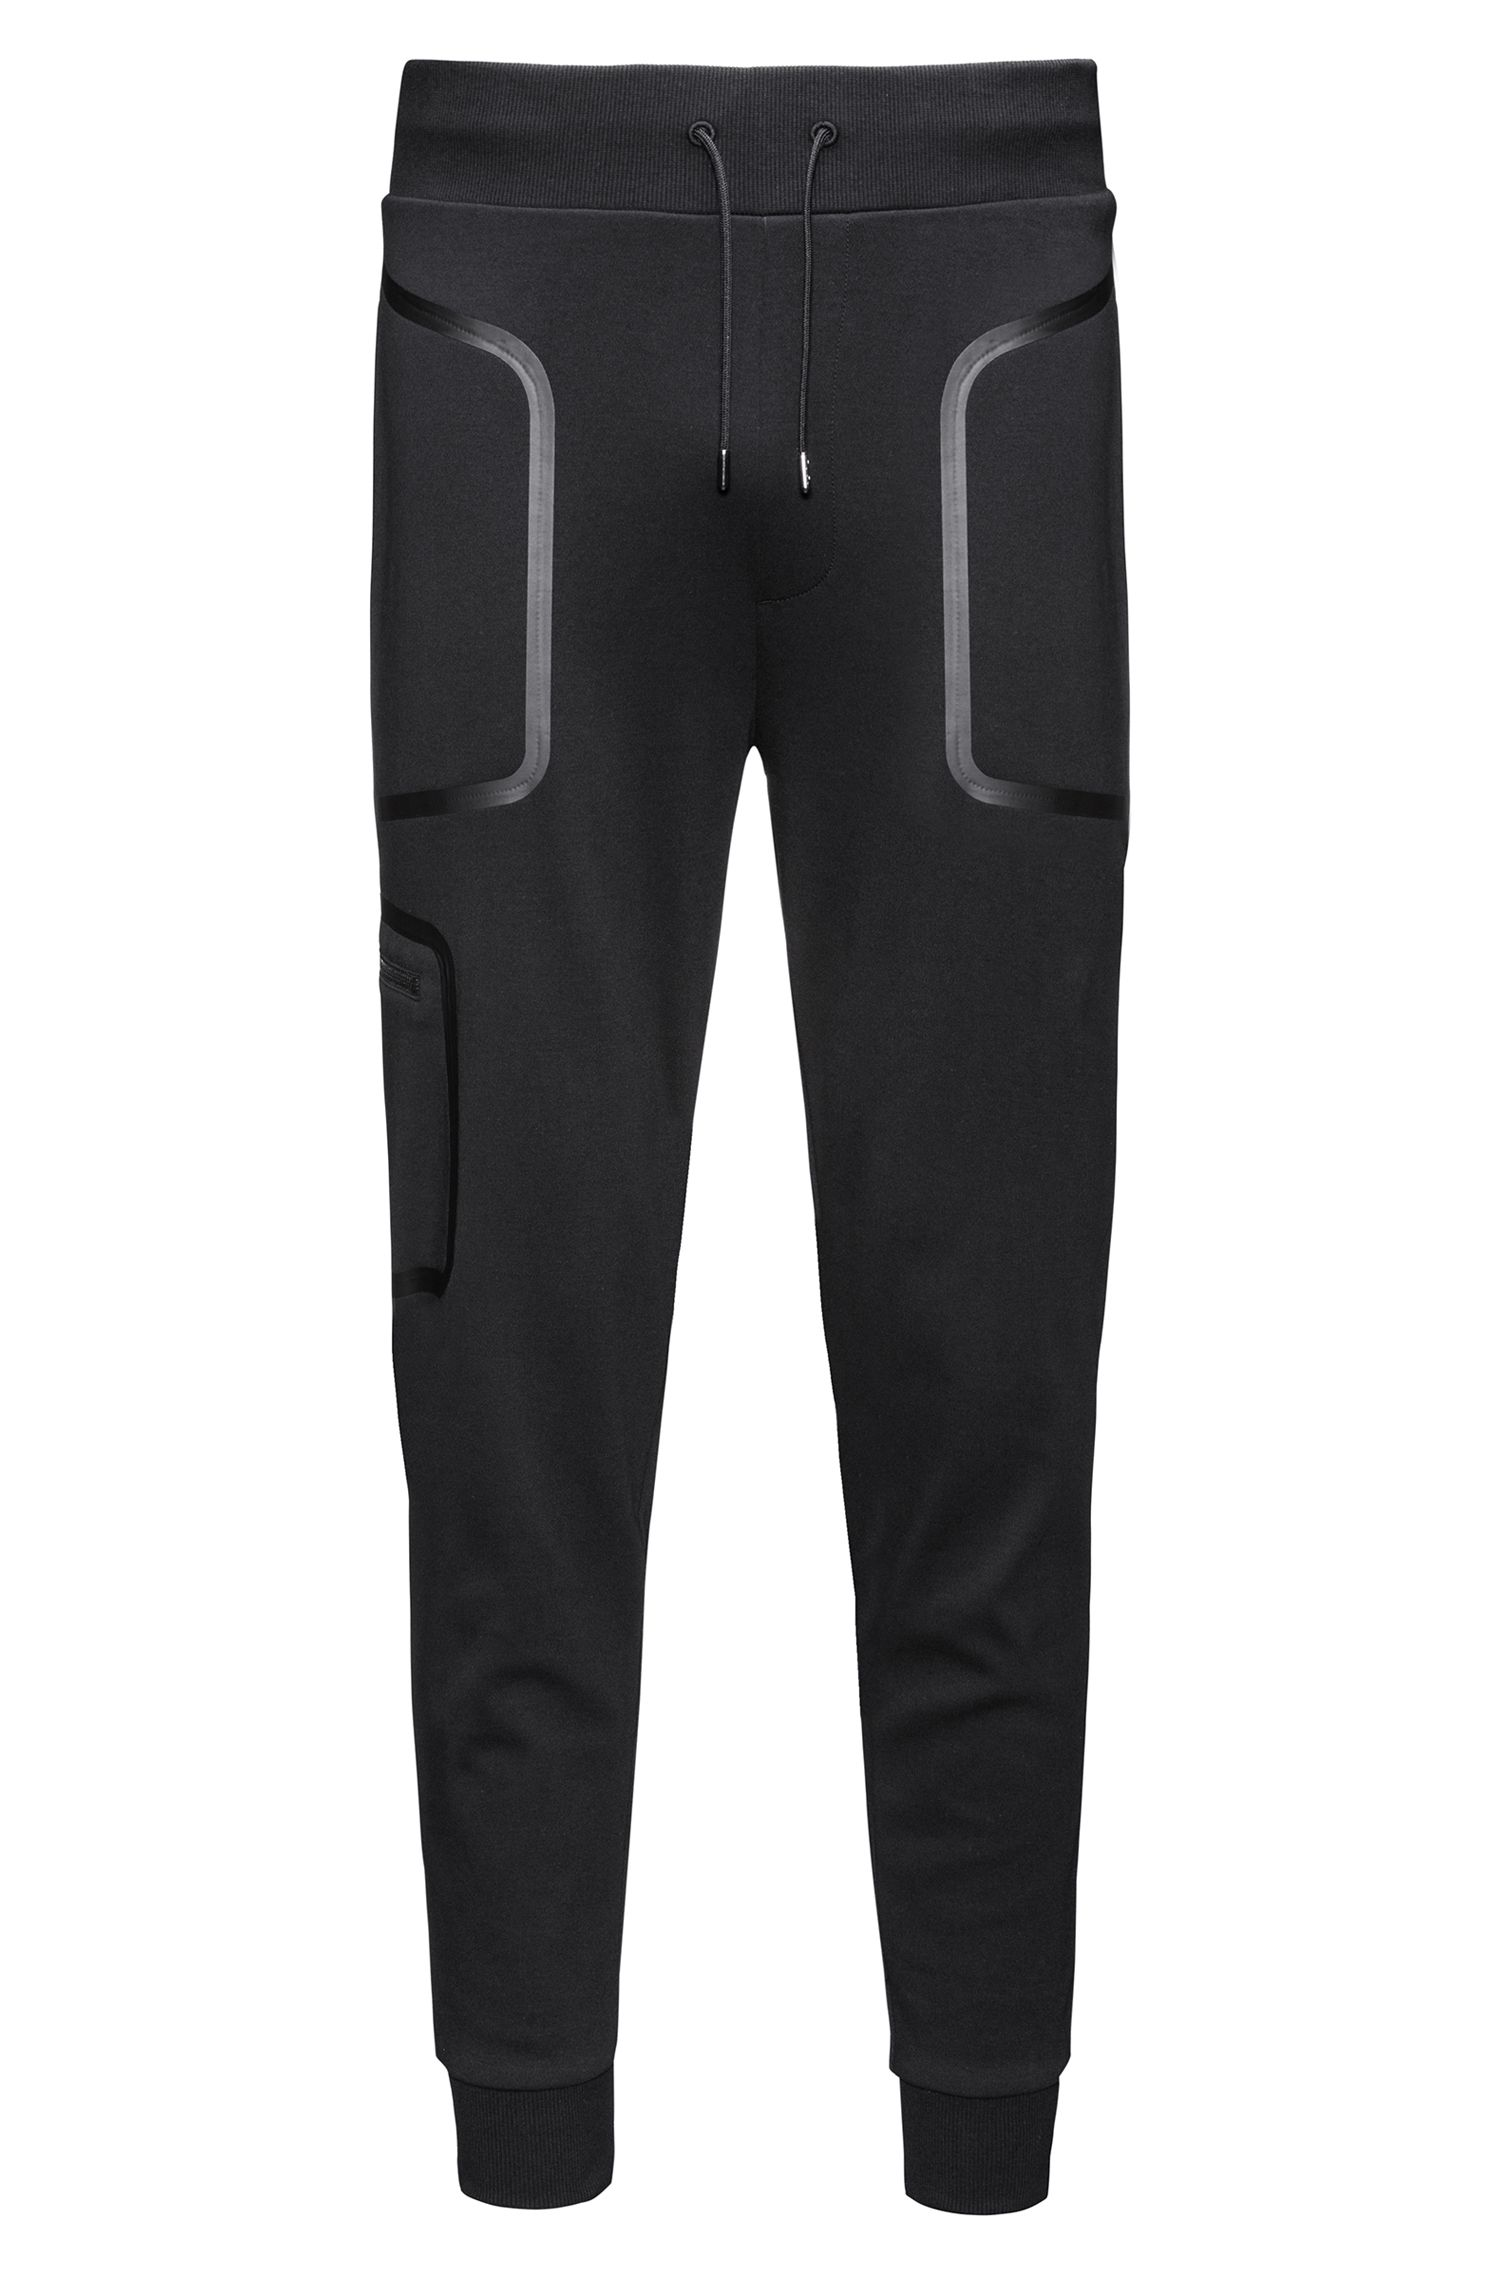 Pantalon de jogging Relaxed Fit en coton interlock